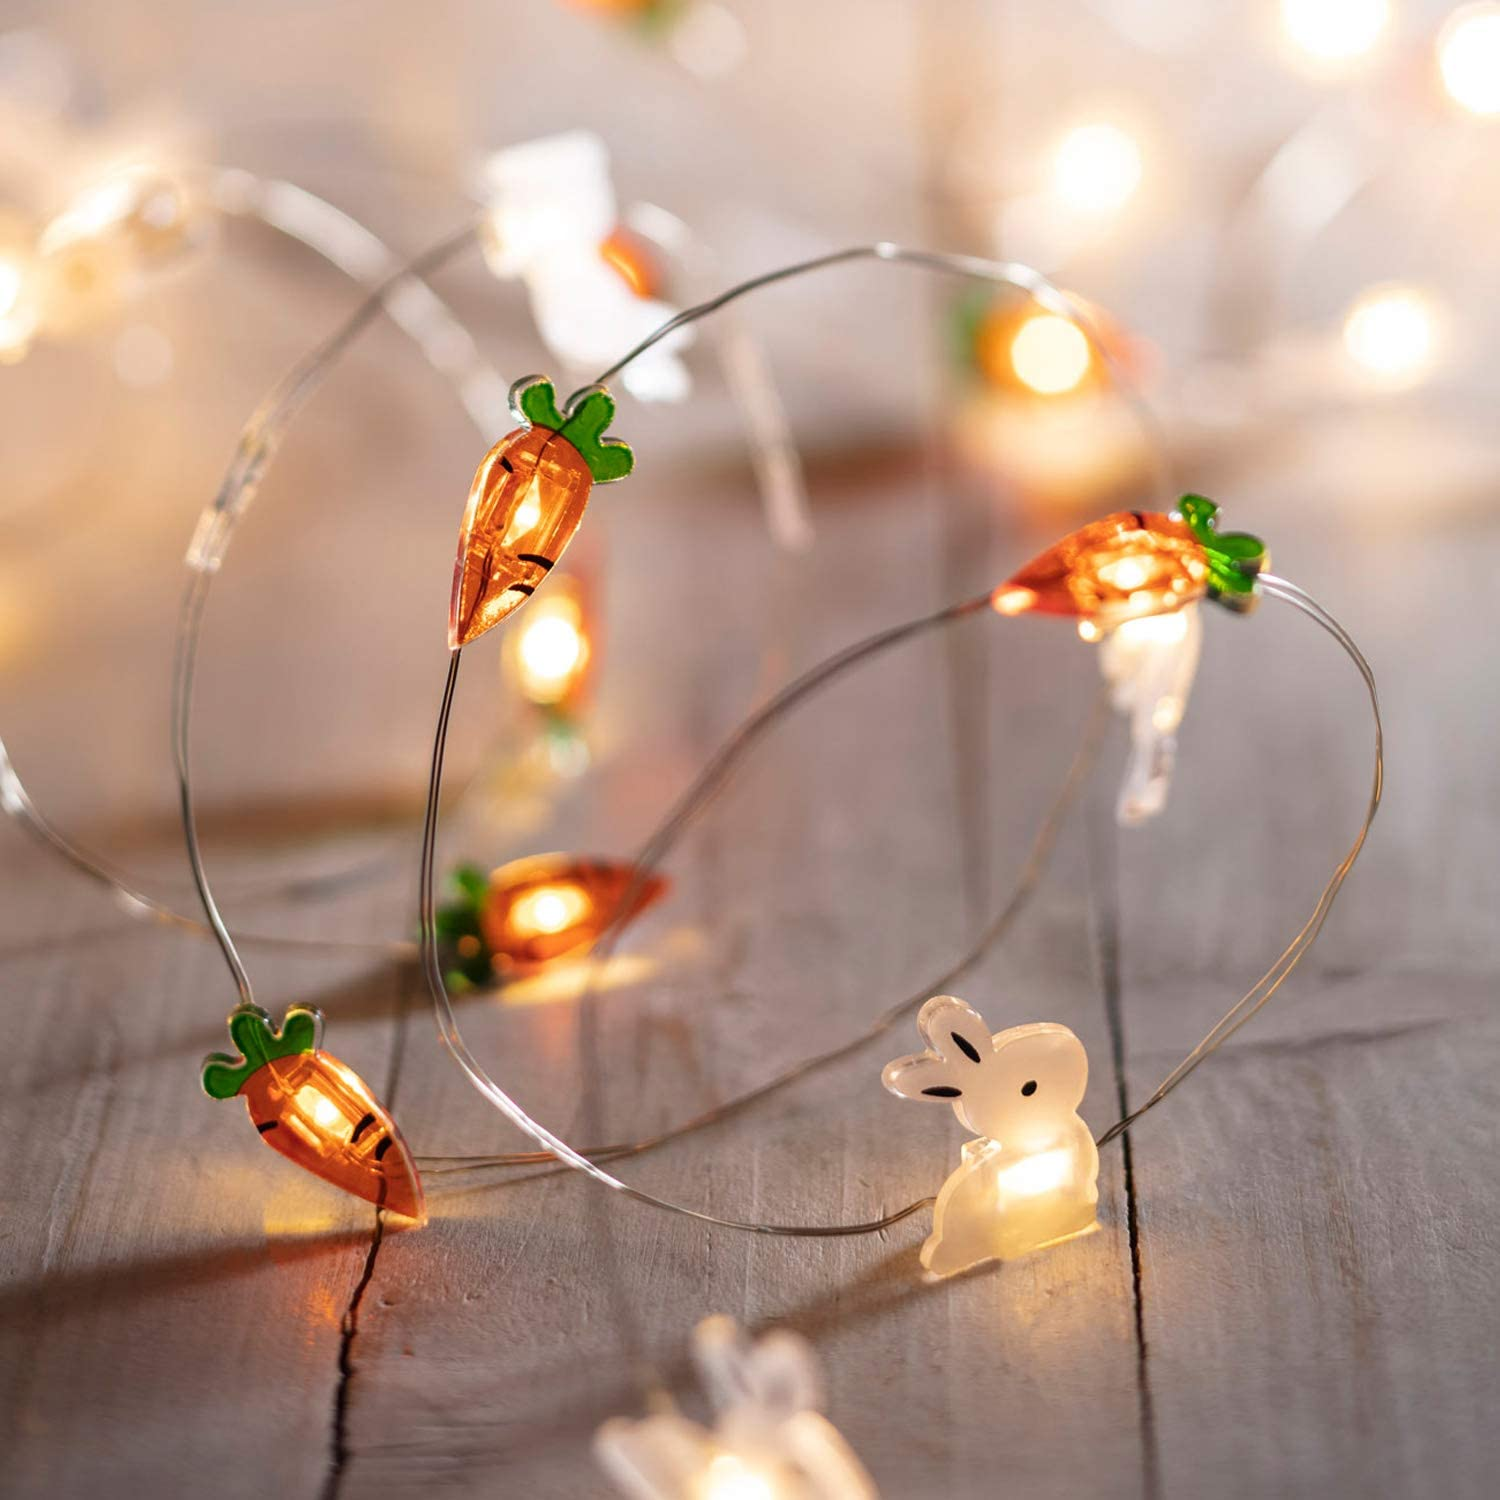 Lights4fun 20 Warm White LED Battery Easter Bunny /& Carrot Micro Fairy Lights